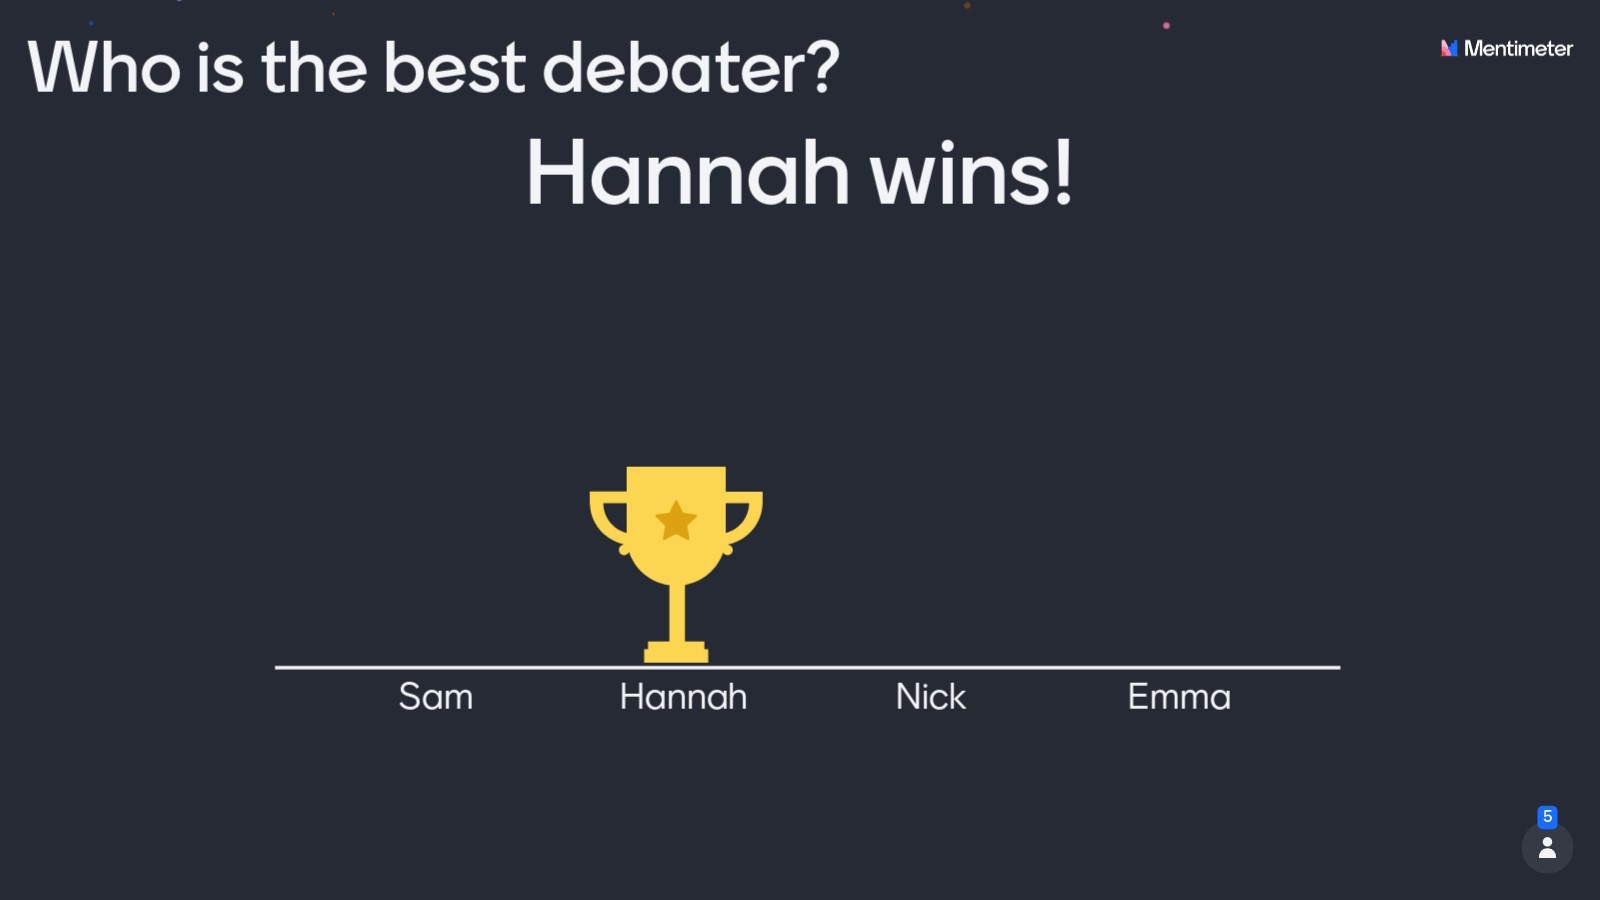 Let the audience vote for their favorite debator!